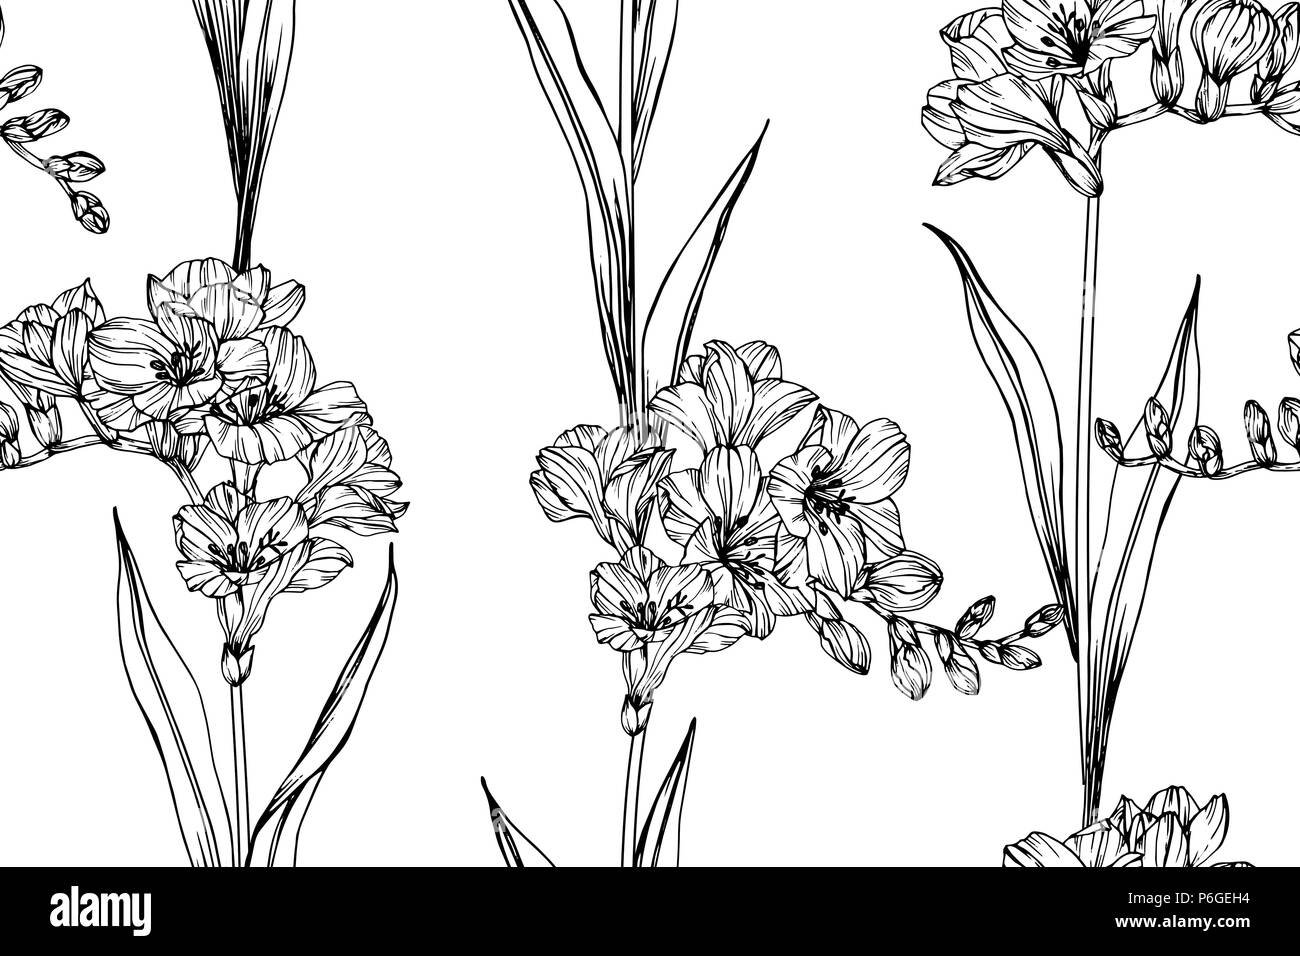 779fb501e Seamless Freesia flower pattern background. Black and white with drawing  line art illustration.